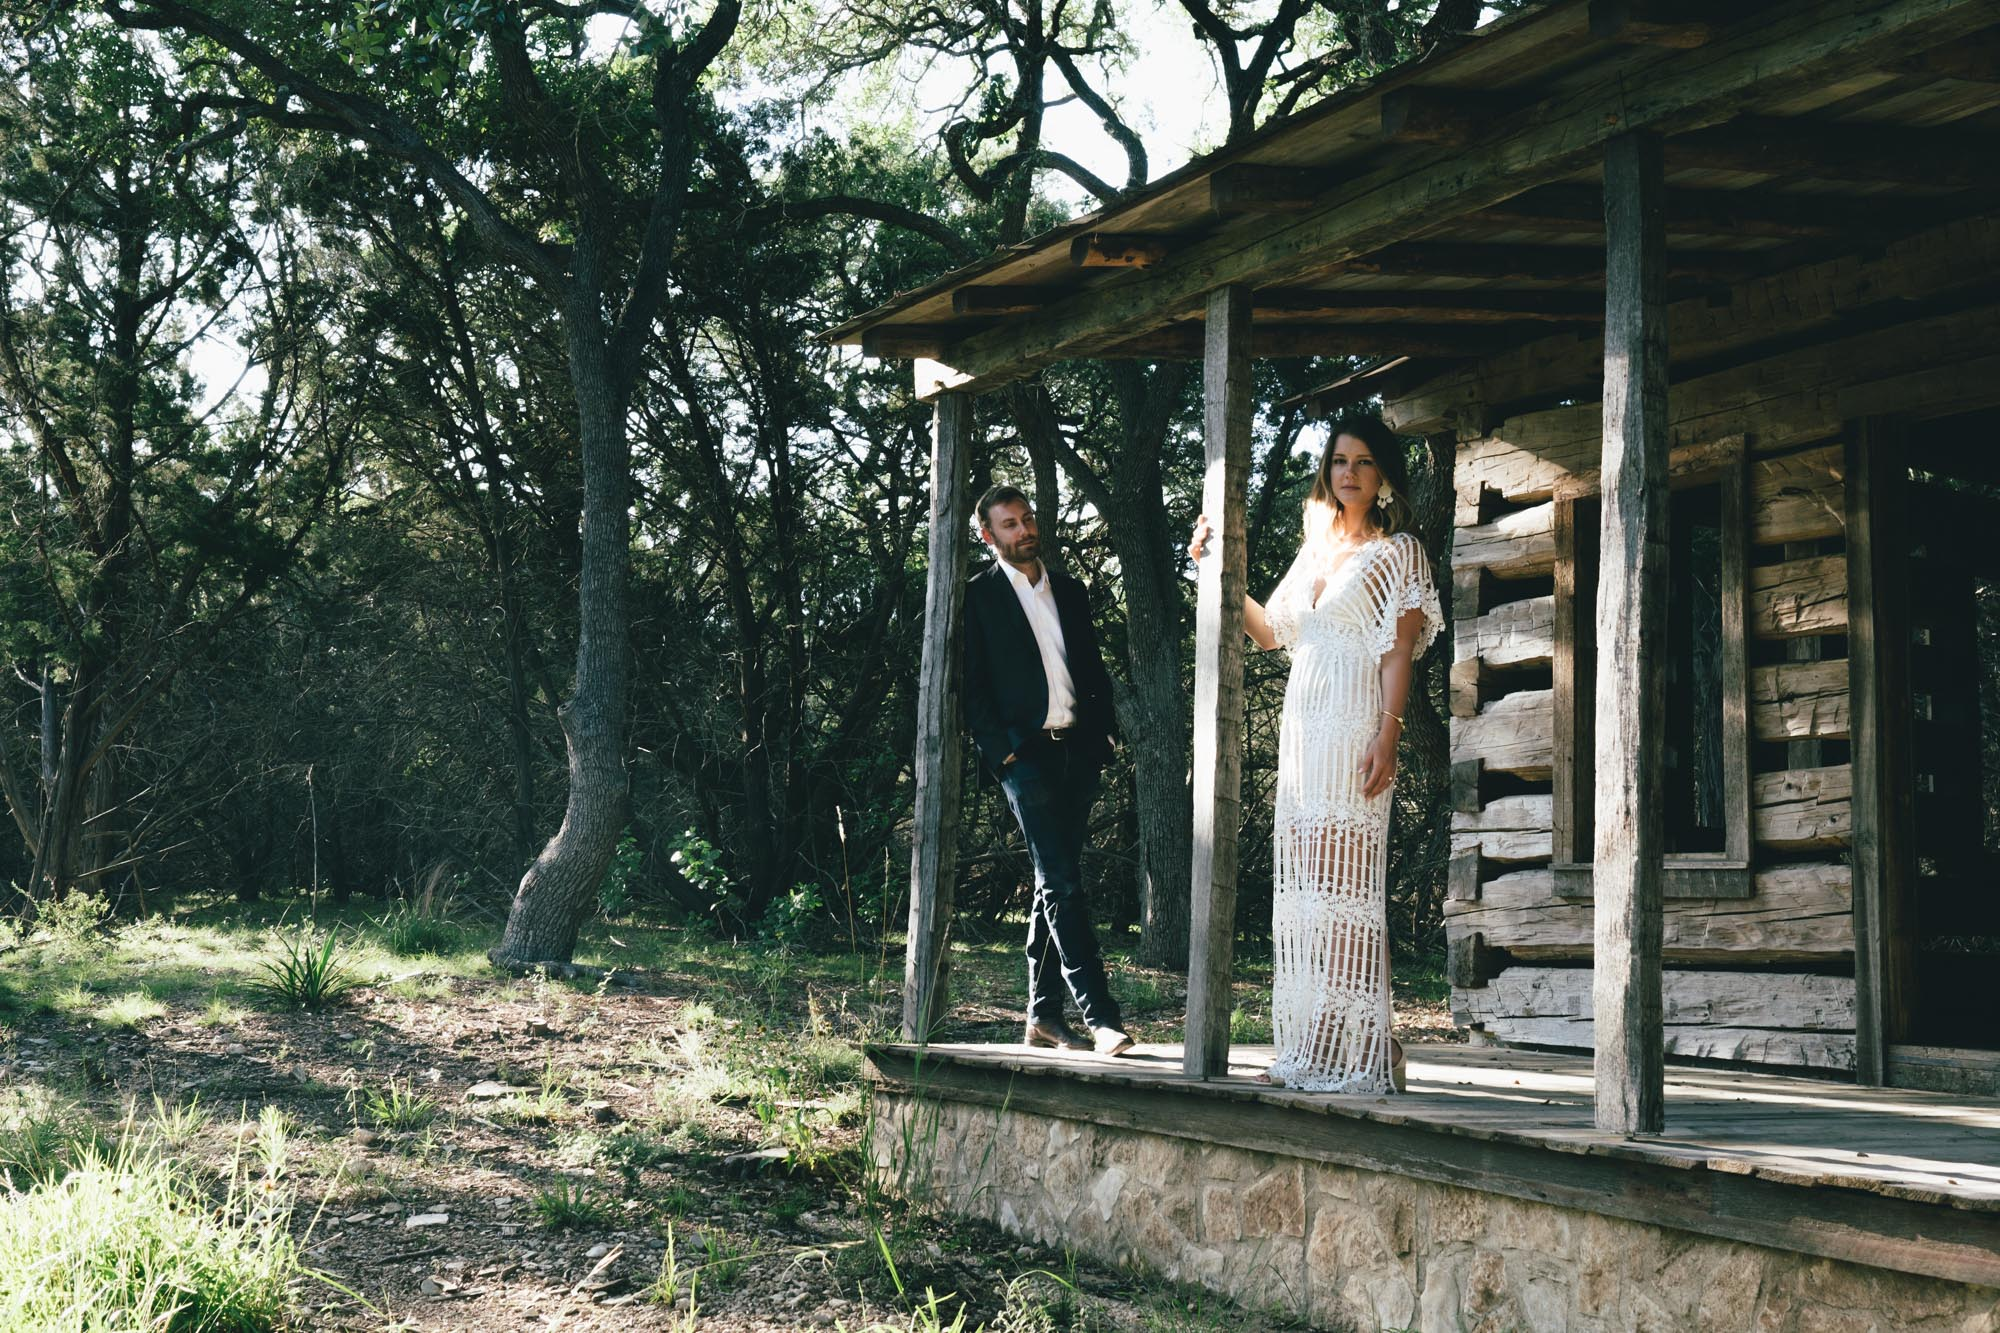 engagement_photography_austin_texas_bailey_toksoz_photography_19.jpg